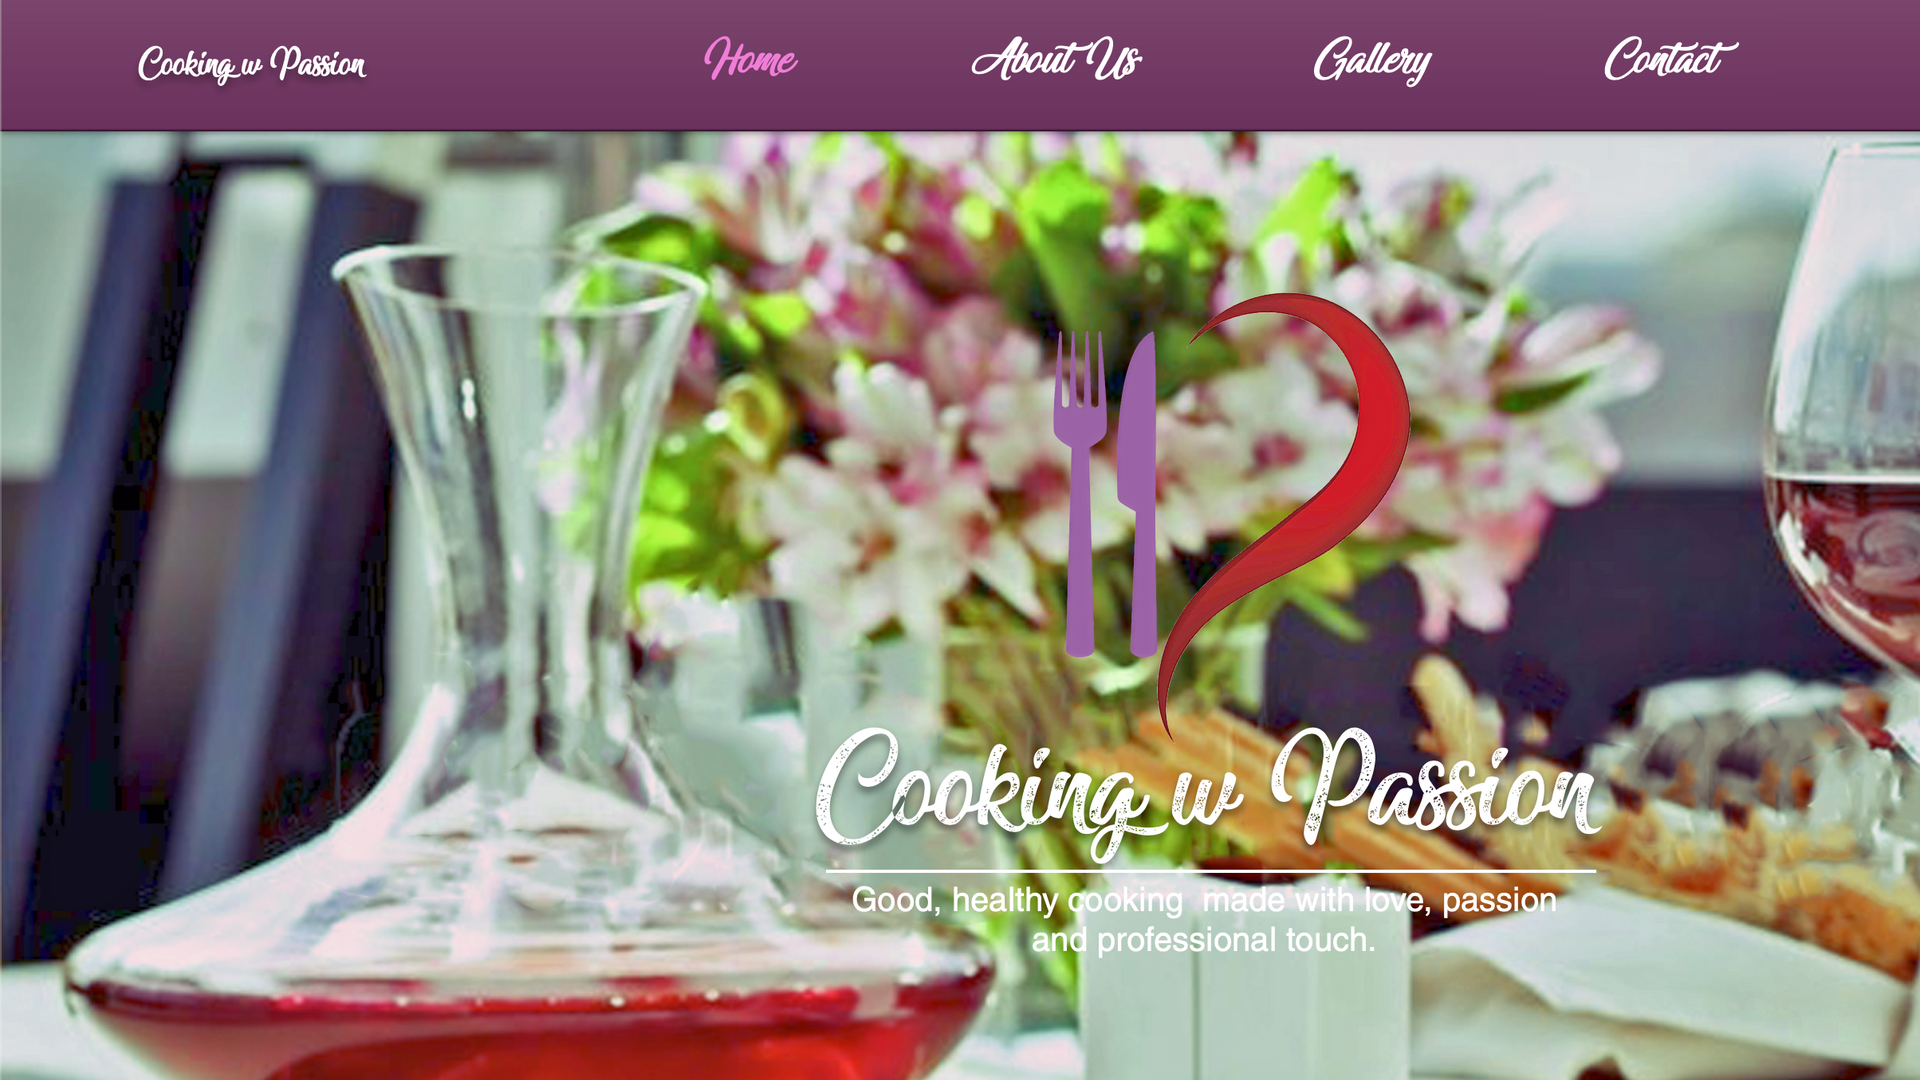 Cooking with passion website design..